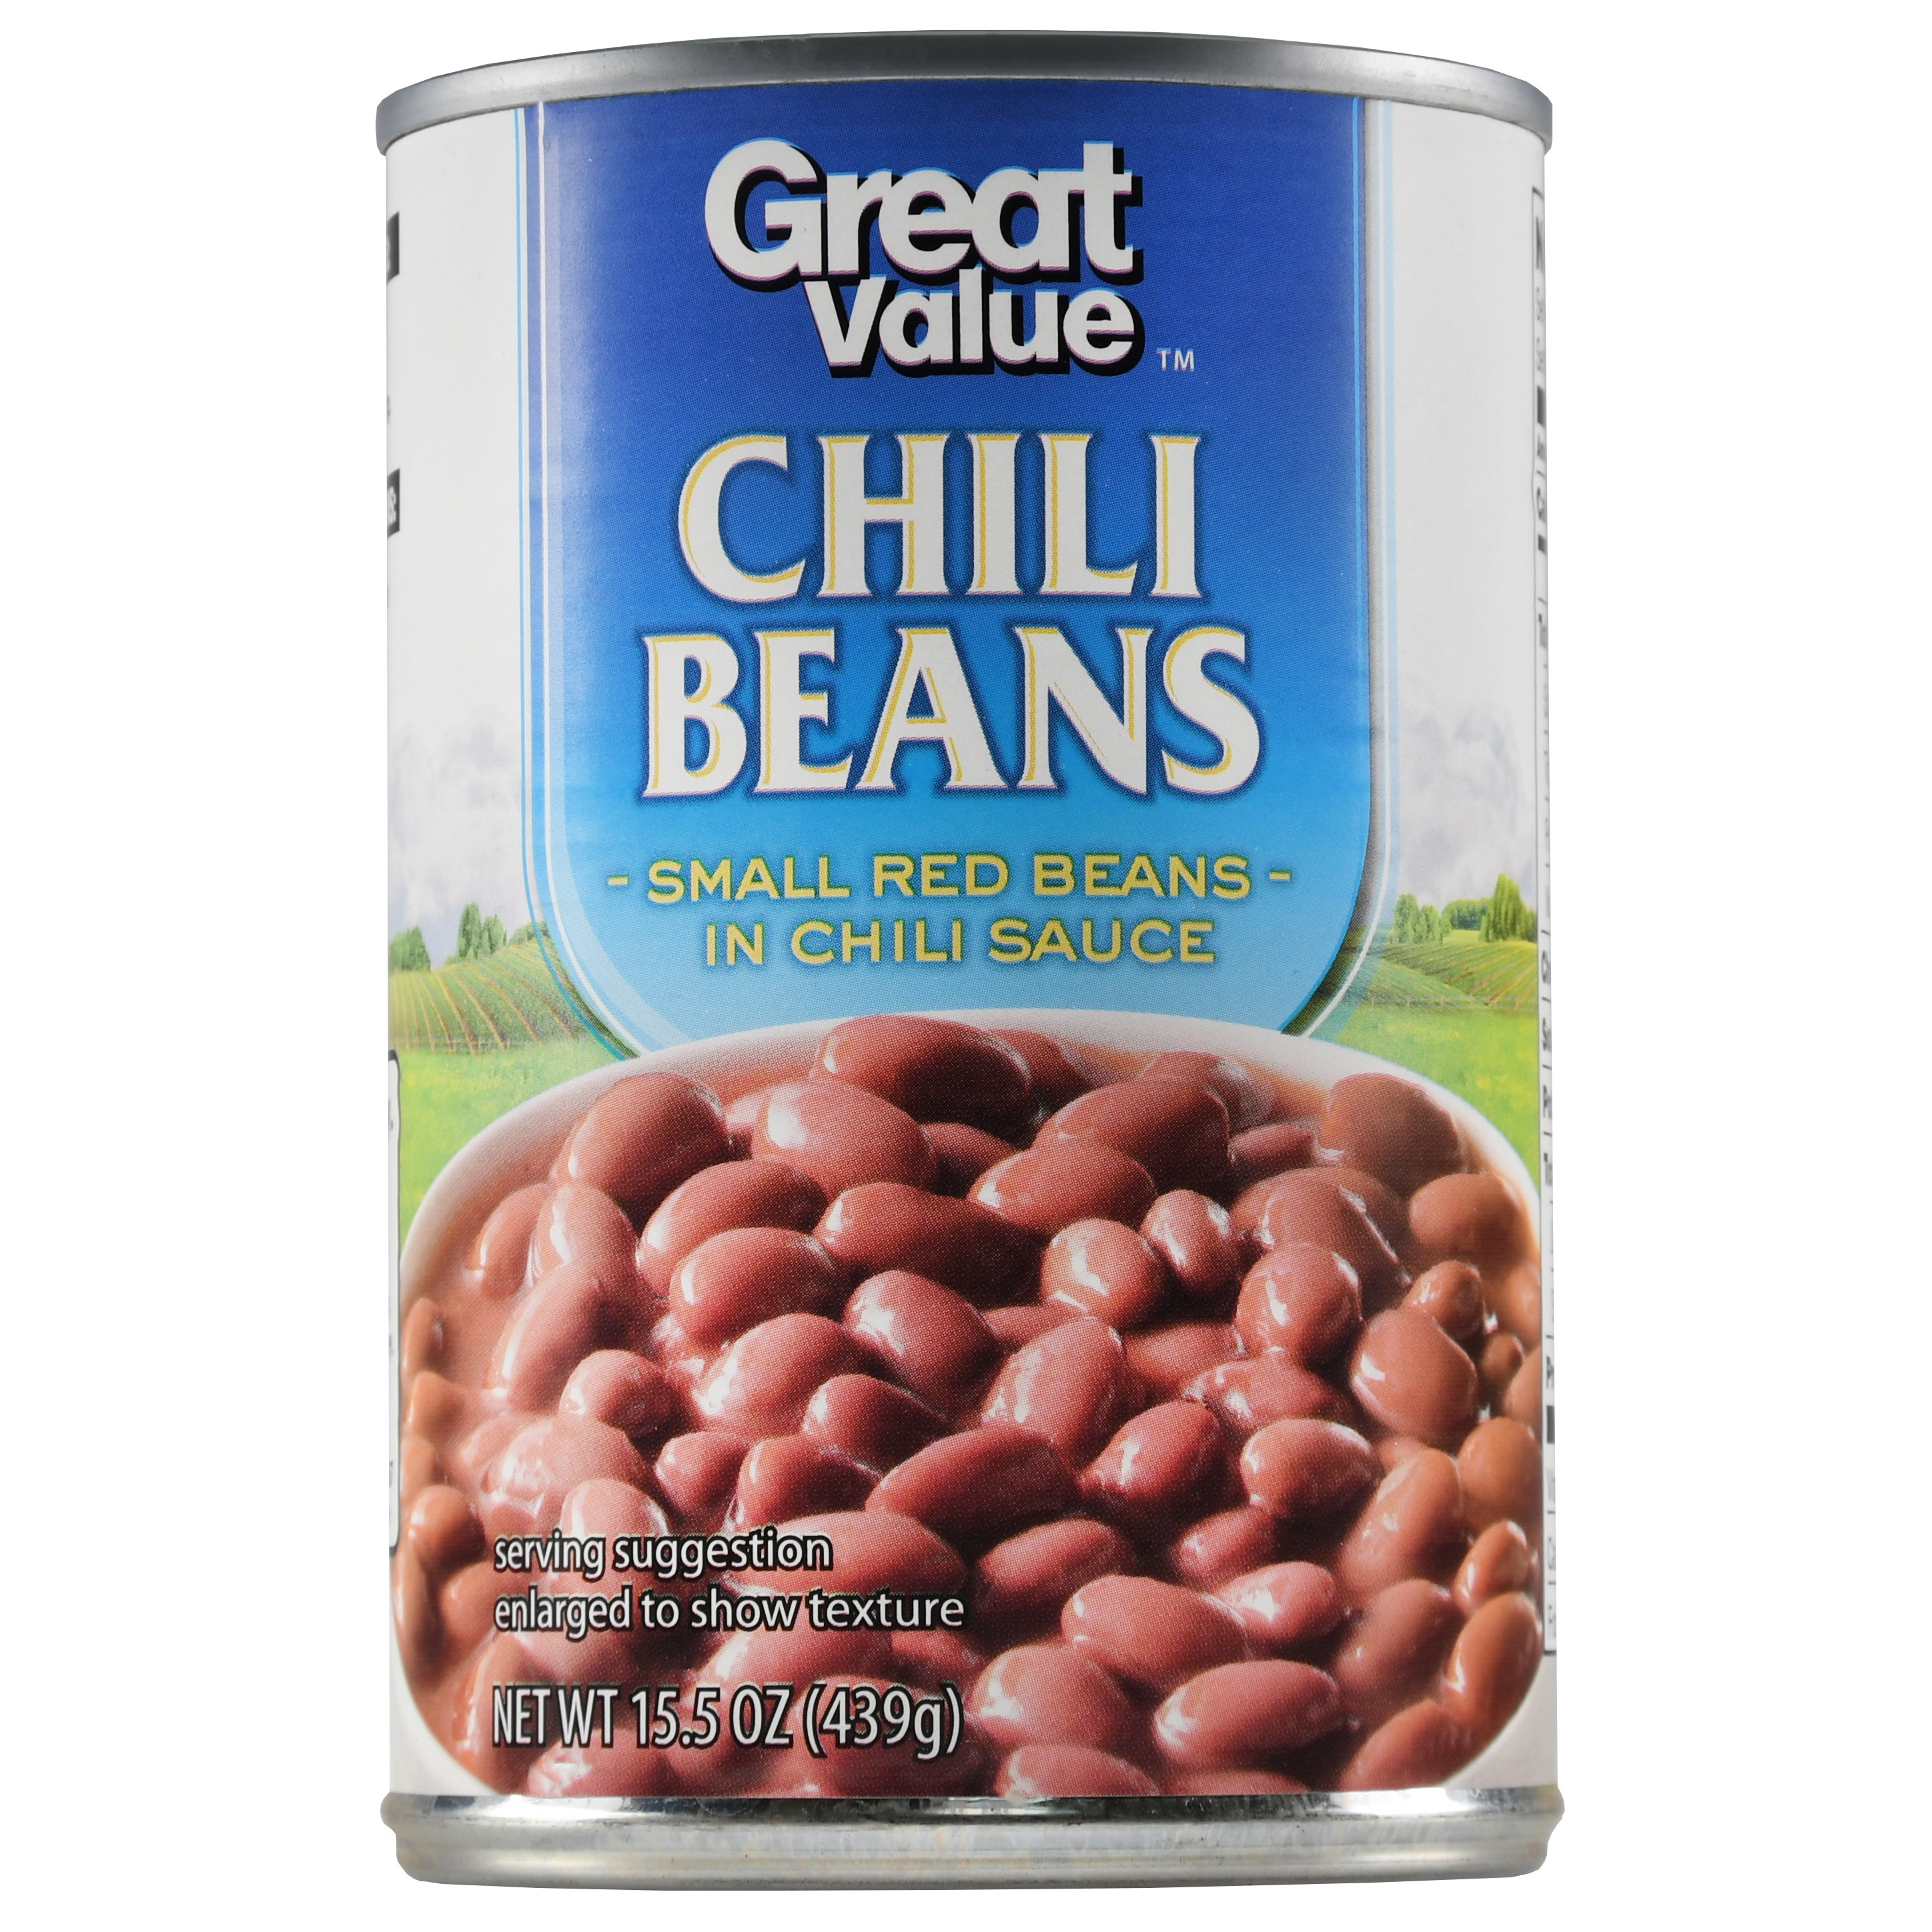 Great Value Chili Beans, Canned, 15.5 oz - Walmart.com